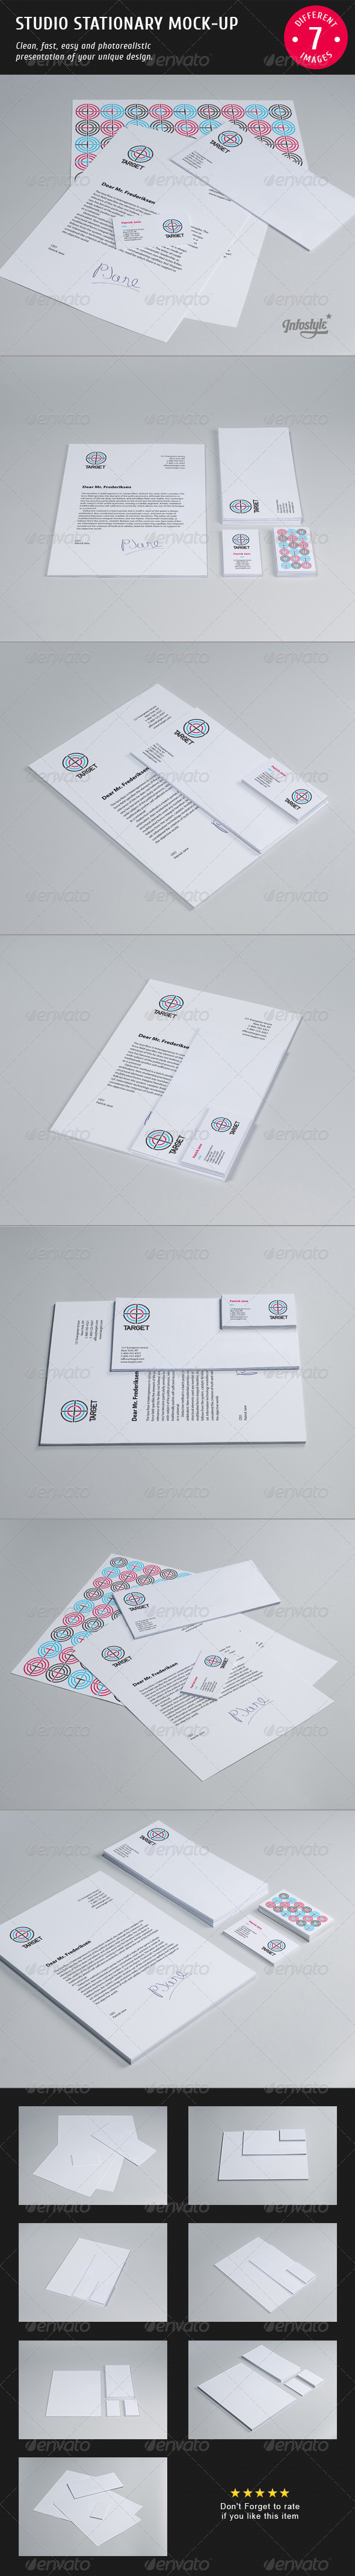 Studio Stationary Mock-up - Stationery Print